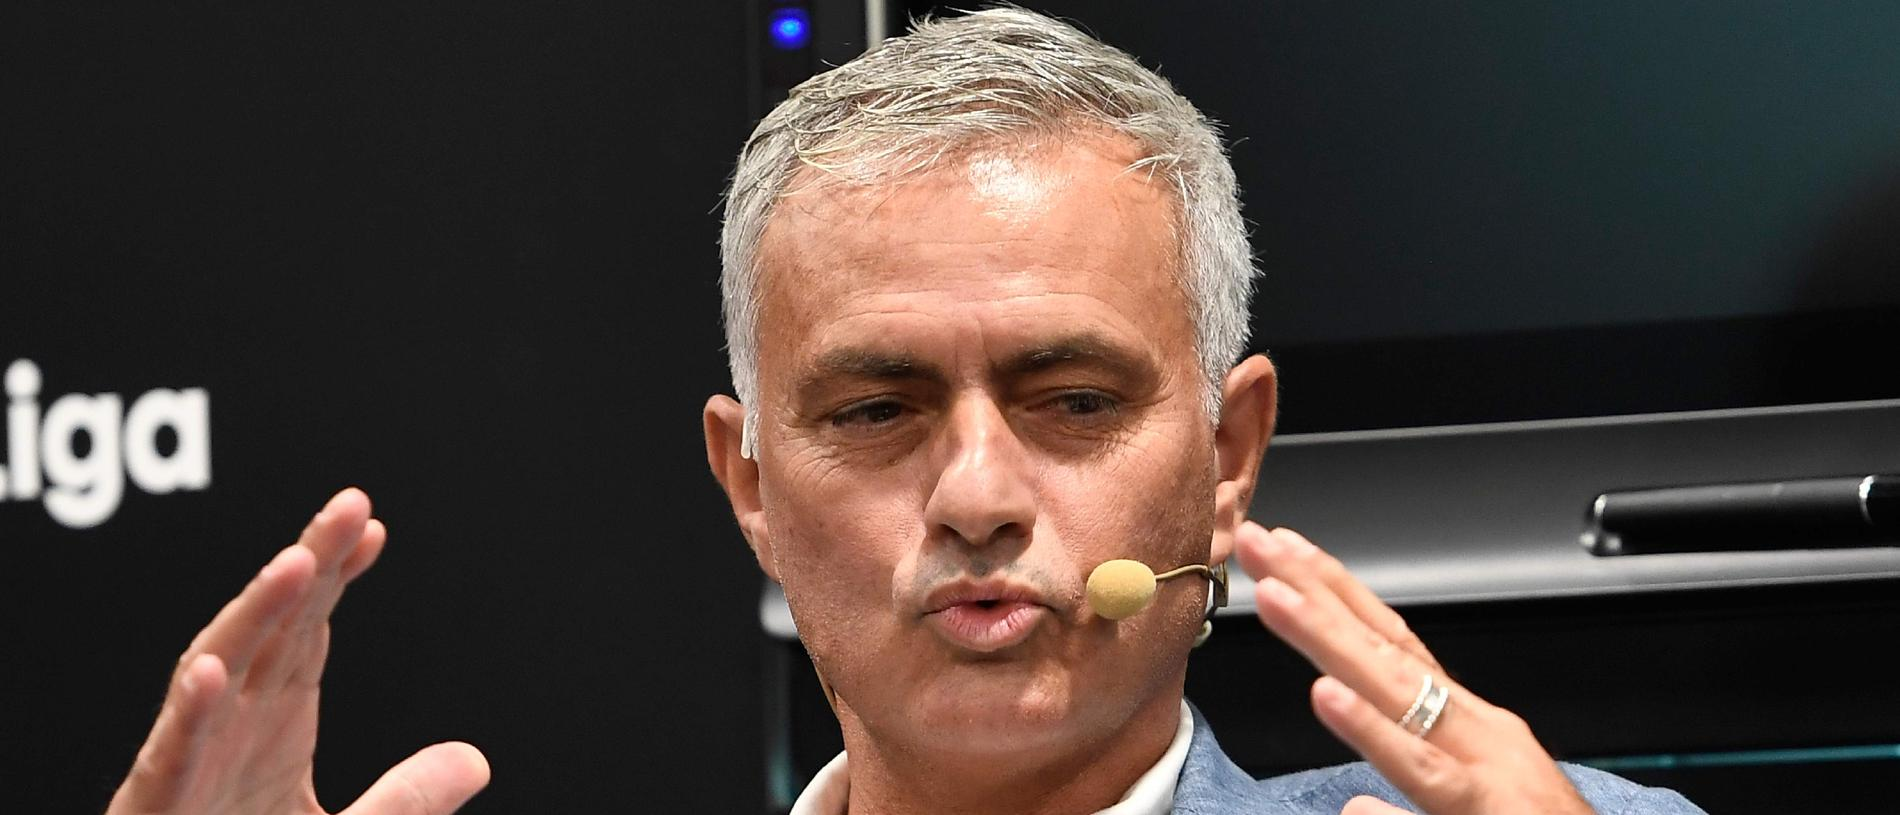 Portuguese football manager Jose Mourinho attends a conference about speed and innovation in football on September 12, 2019 in Madrid. (Photo by PIERRE-PHILIPPE MARCOU / AFP)